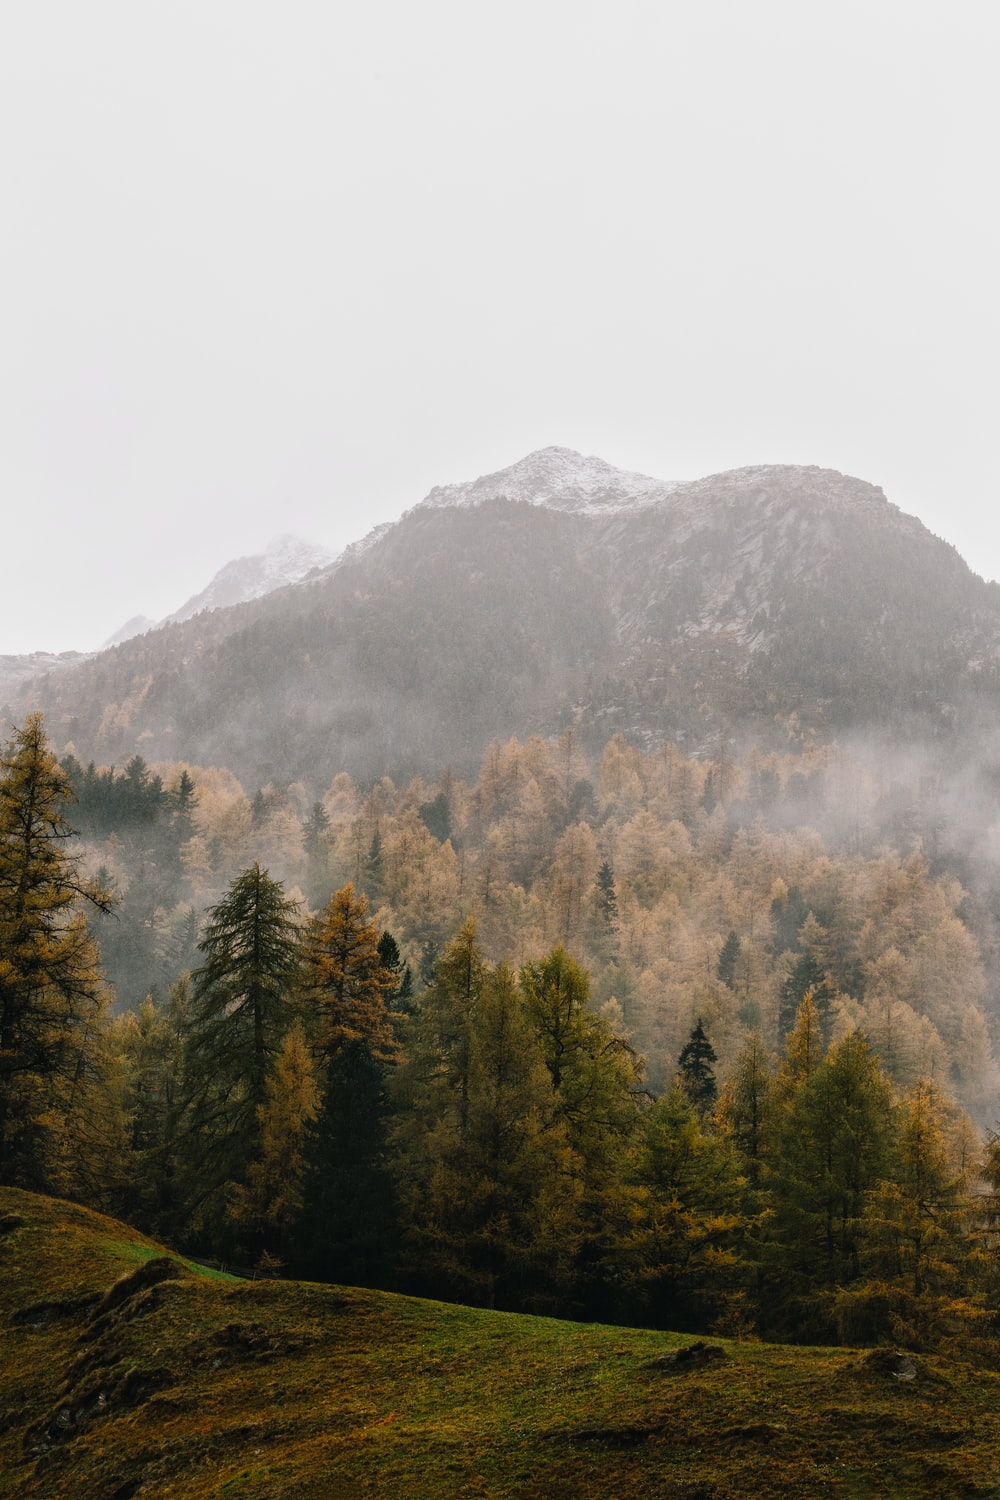 mountain with brown trees